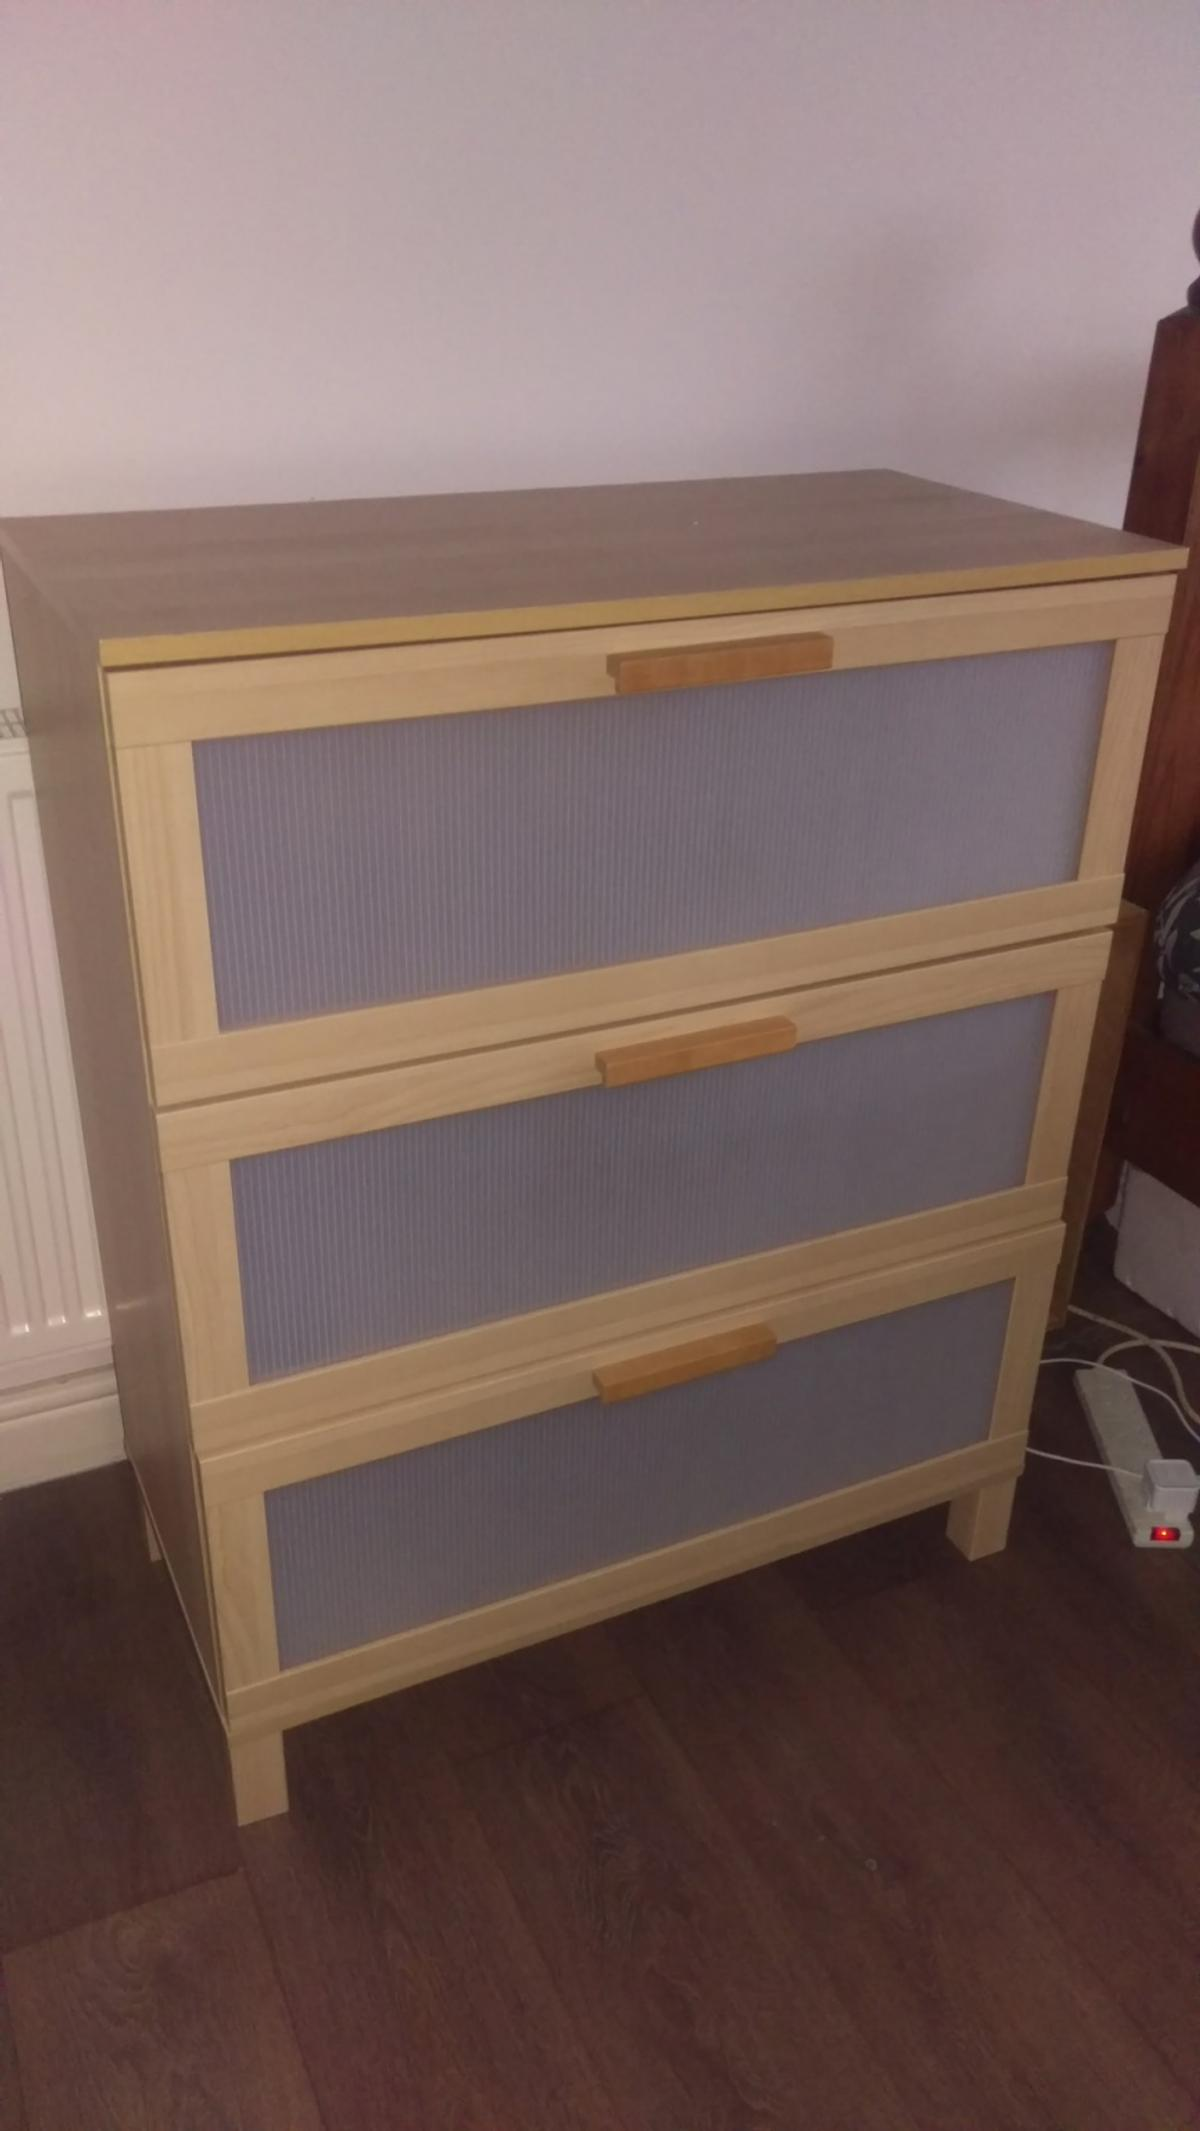 Ikea Aneboda Chest Of 3 Drawers In Sw13